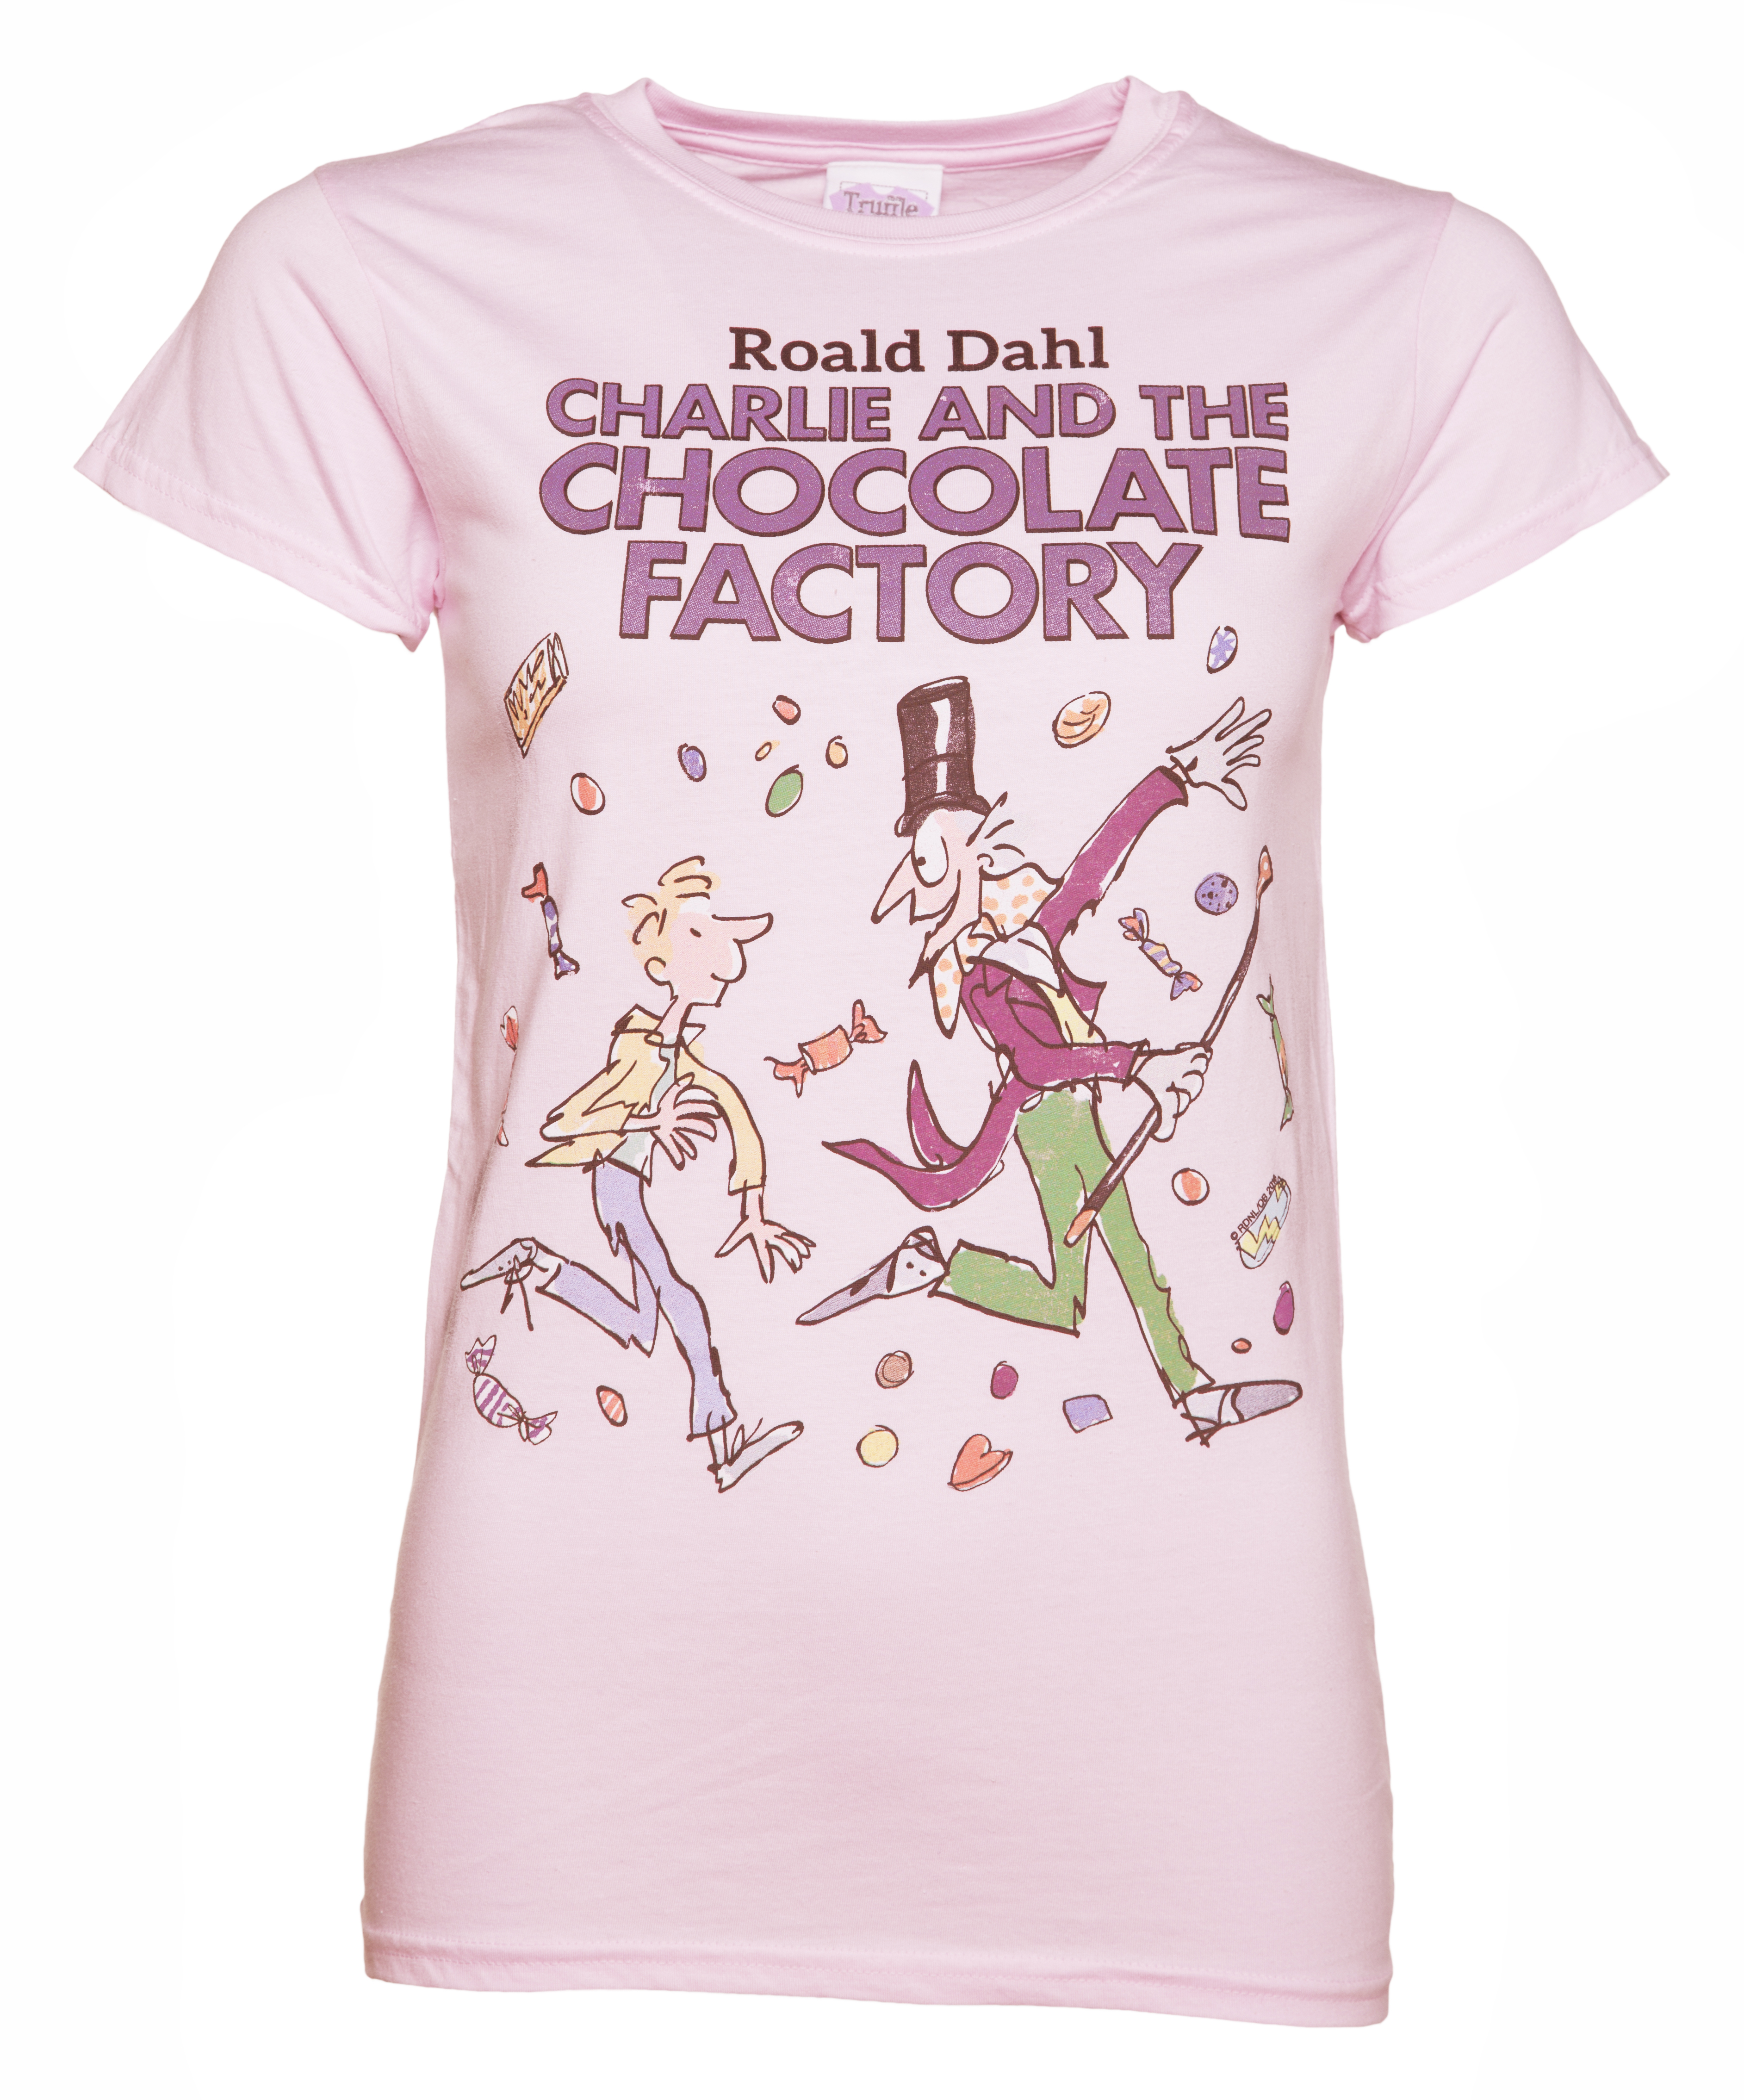 Charlie and the Chocolate Factory T-Shirts and Gifts | TruffleShuffle